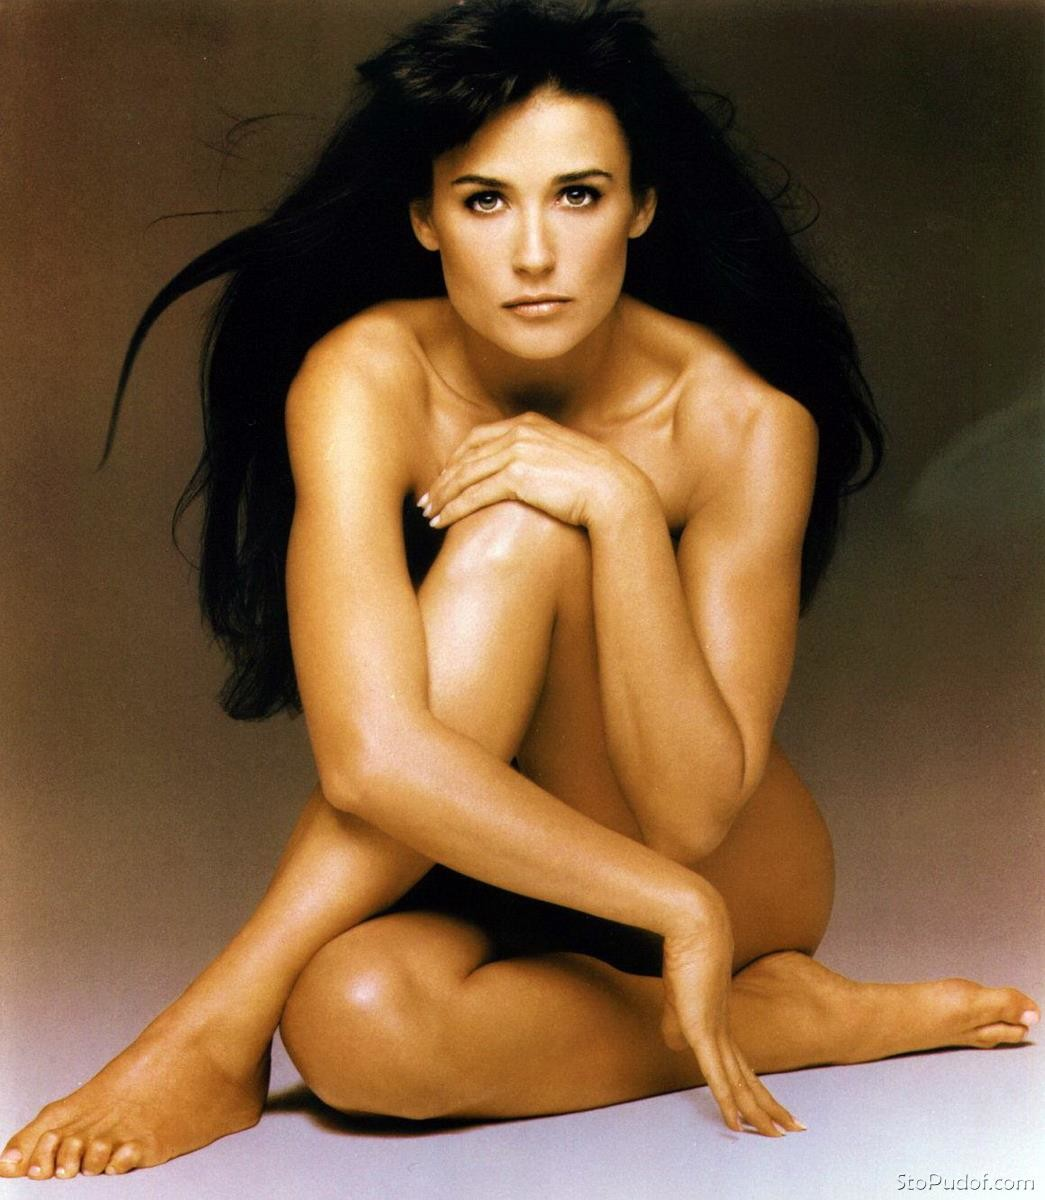 view nude photos of Demi Moore - UkPhotoSafari